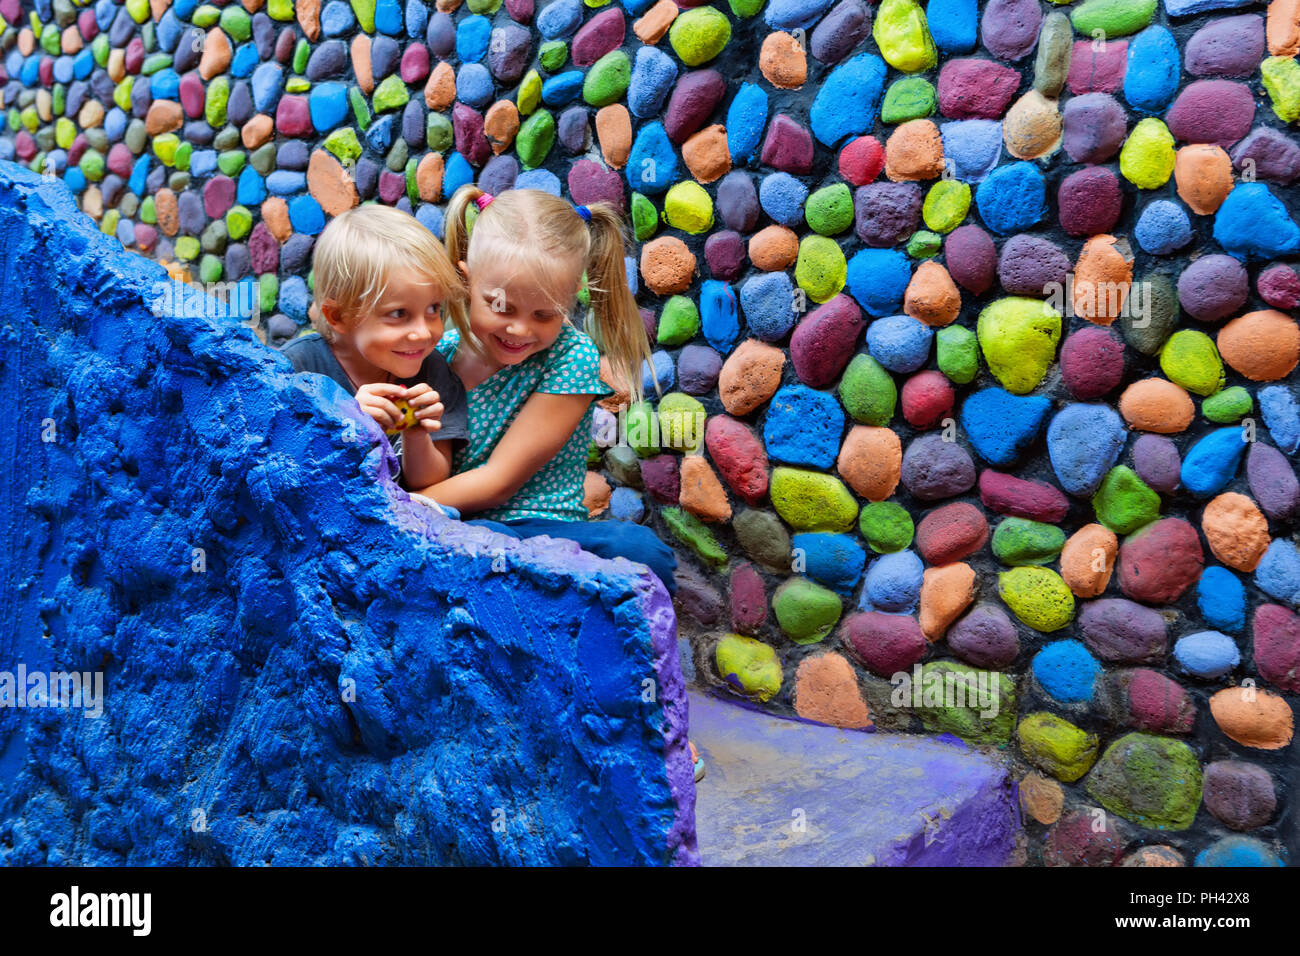 Two happy kids have fun together sitting outside home on colorful stone steps. Playful girl hug laughing younger brother. Travel lifestyle, walking ci - Stock Image